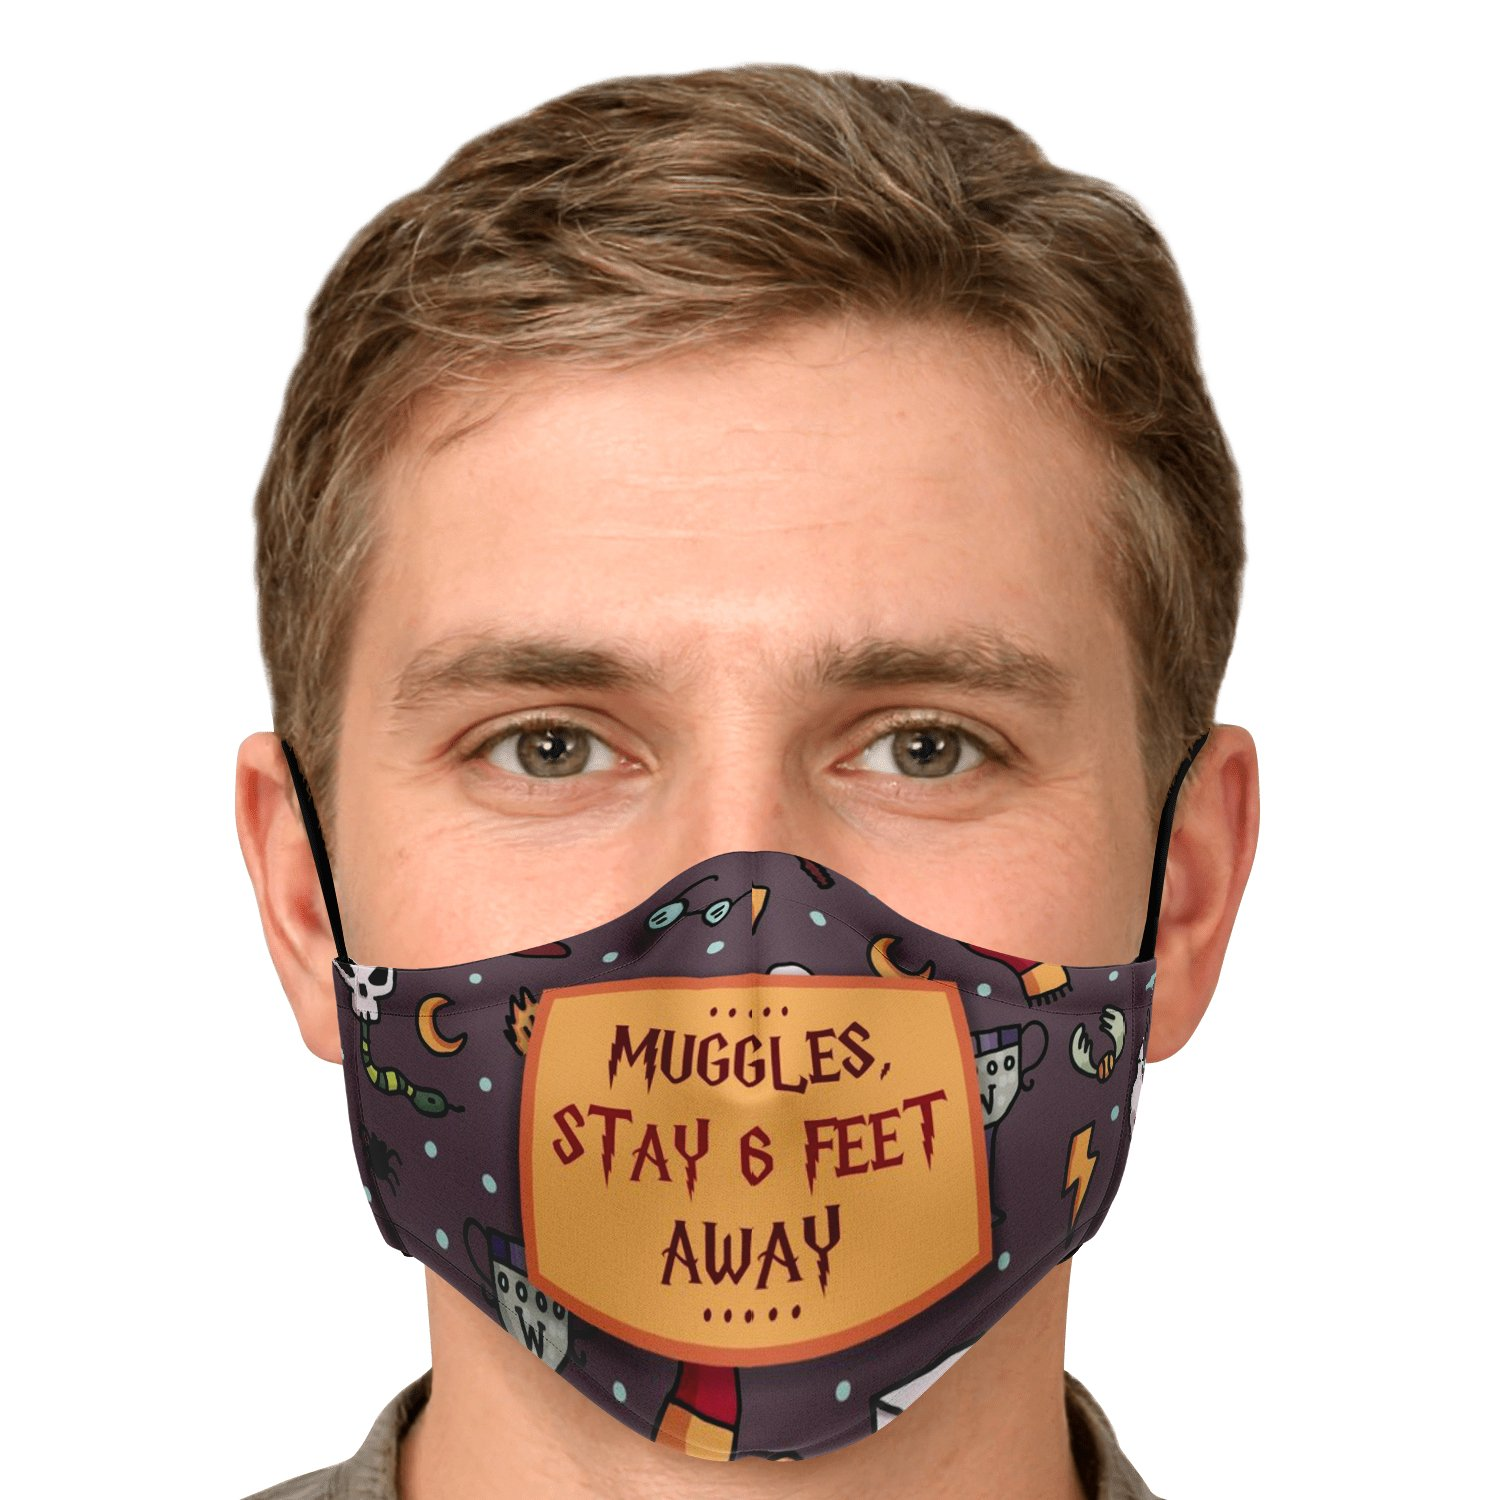 Muggles Stay 6 Feet Away Harry Potter Face Mask 5